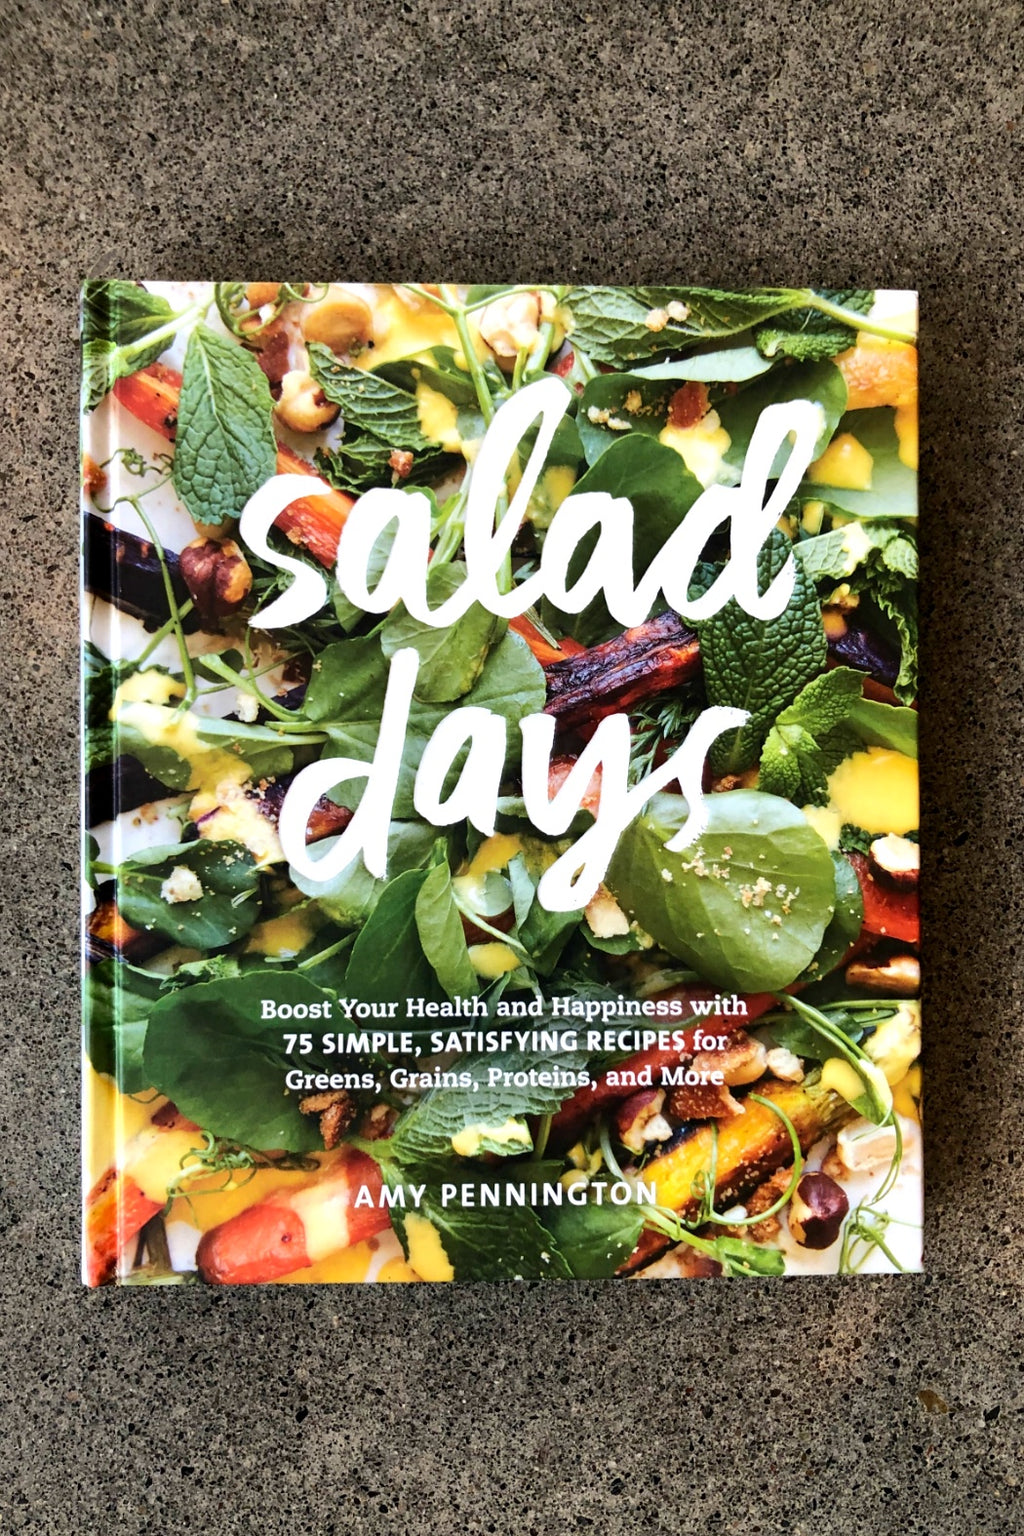 Salad Days: Boost Your Health and Happiness with 75 Simple, Satisfying Recipes for Greens, Grains, Proteins, and More  By Amy Pennington